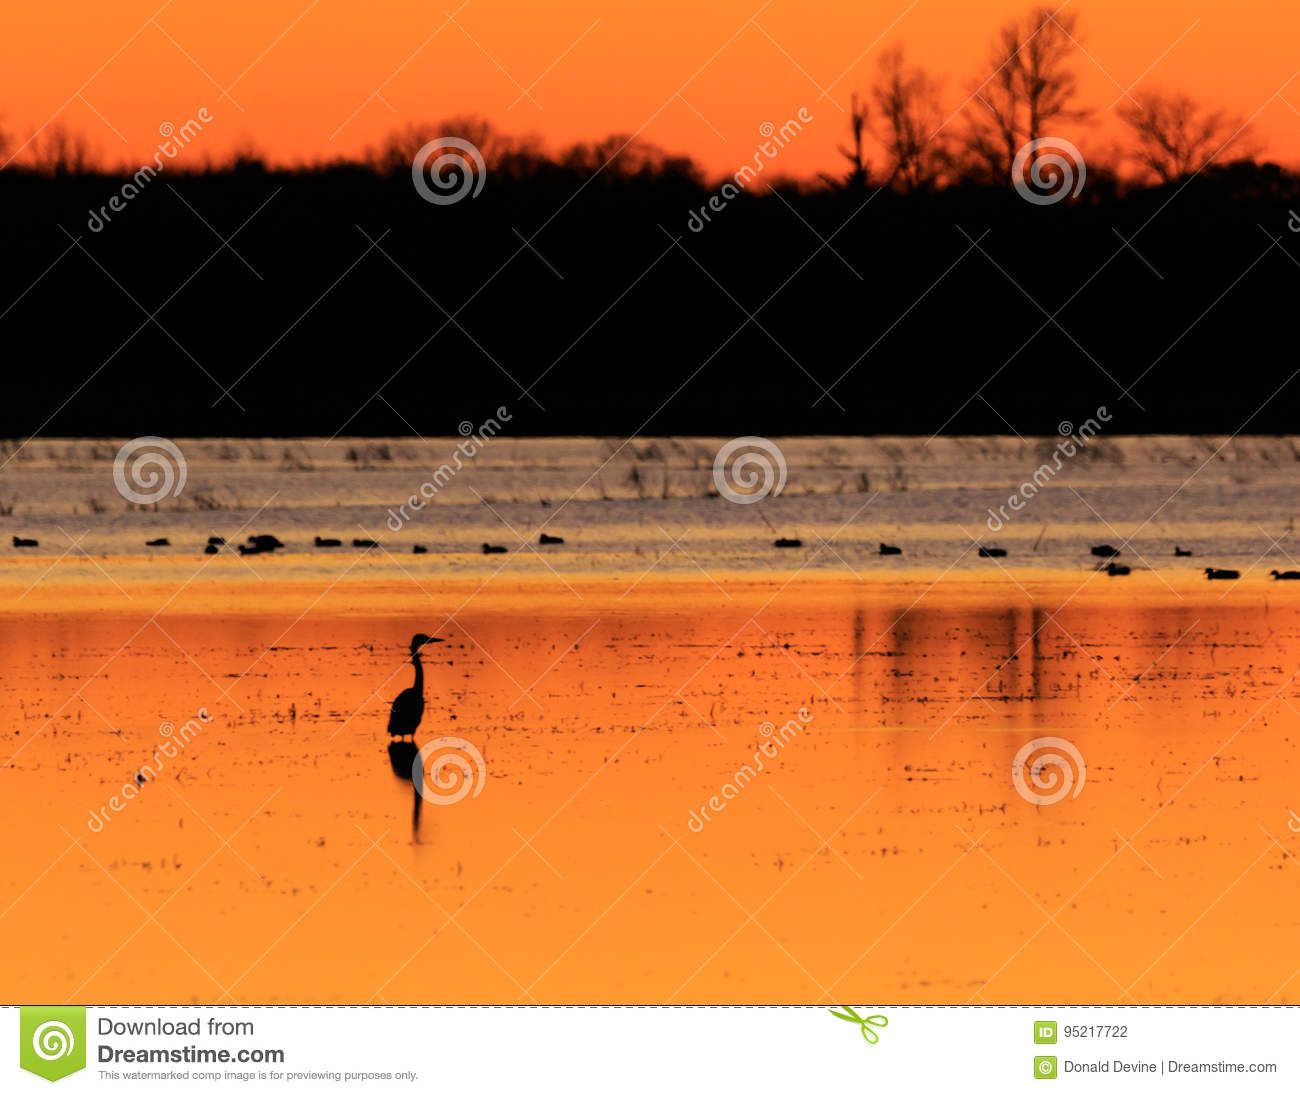 Great Blue Heron with ducks in the background standing in flooded rice field used as hunting ground during duck season at the Bald